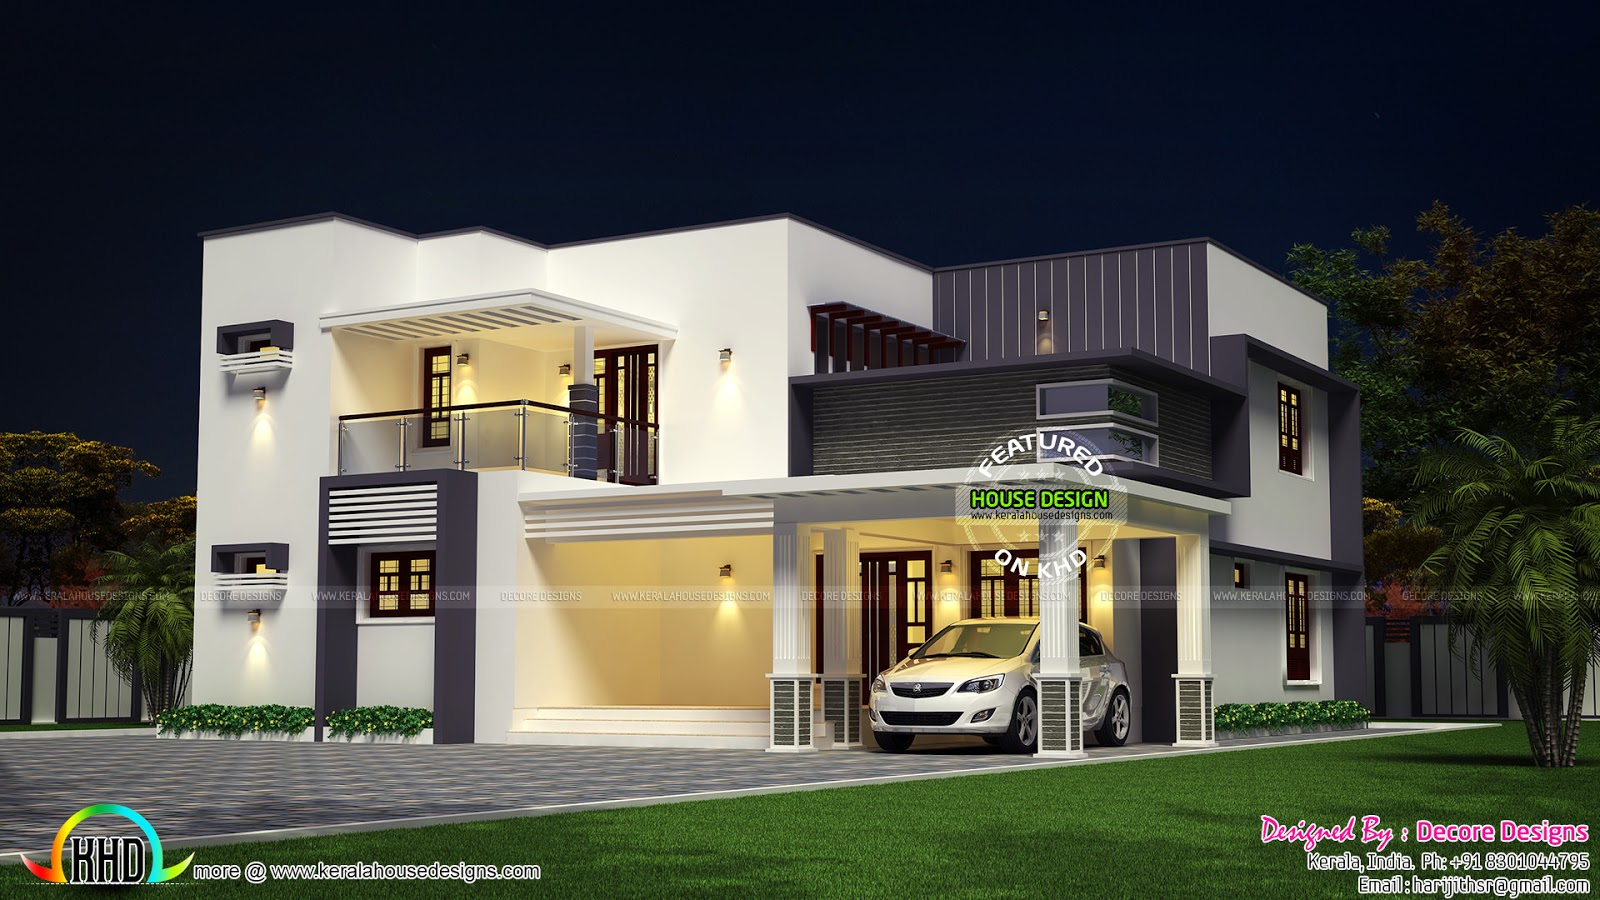 Flat roof modern 2430 sq ft house kerala home design 200 yards house design